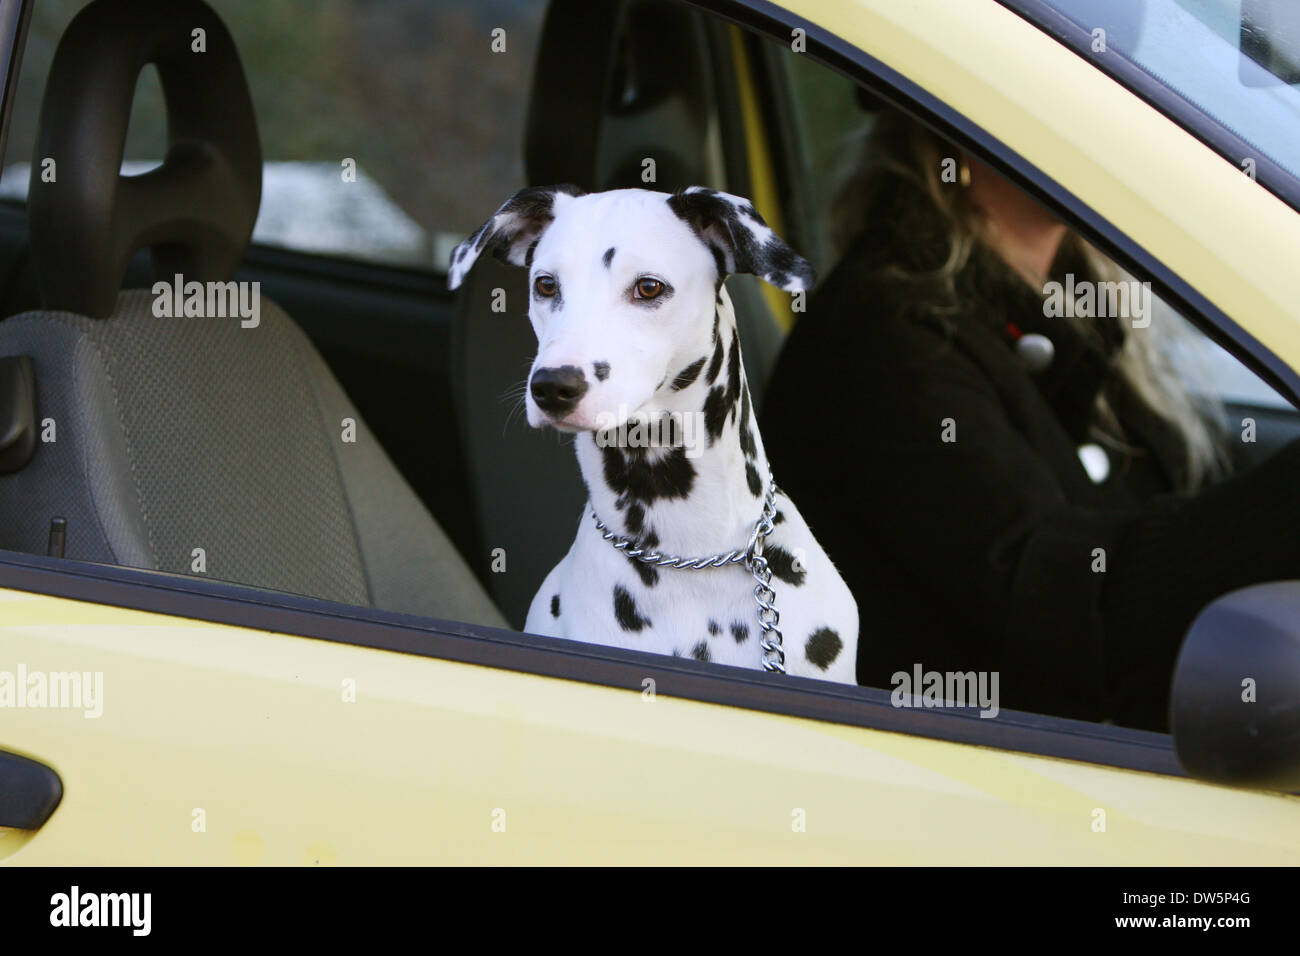 /Dog Dalmatian / Dalmatiner / Dalmatien  / adult looking out of car window - Stock Image